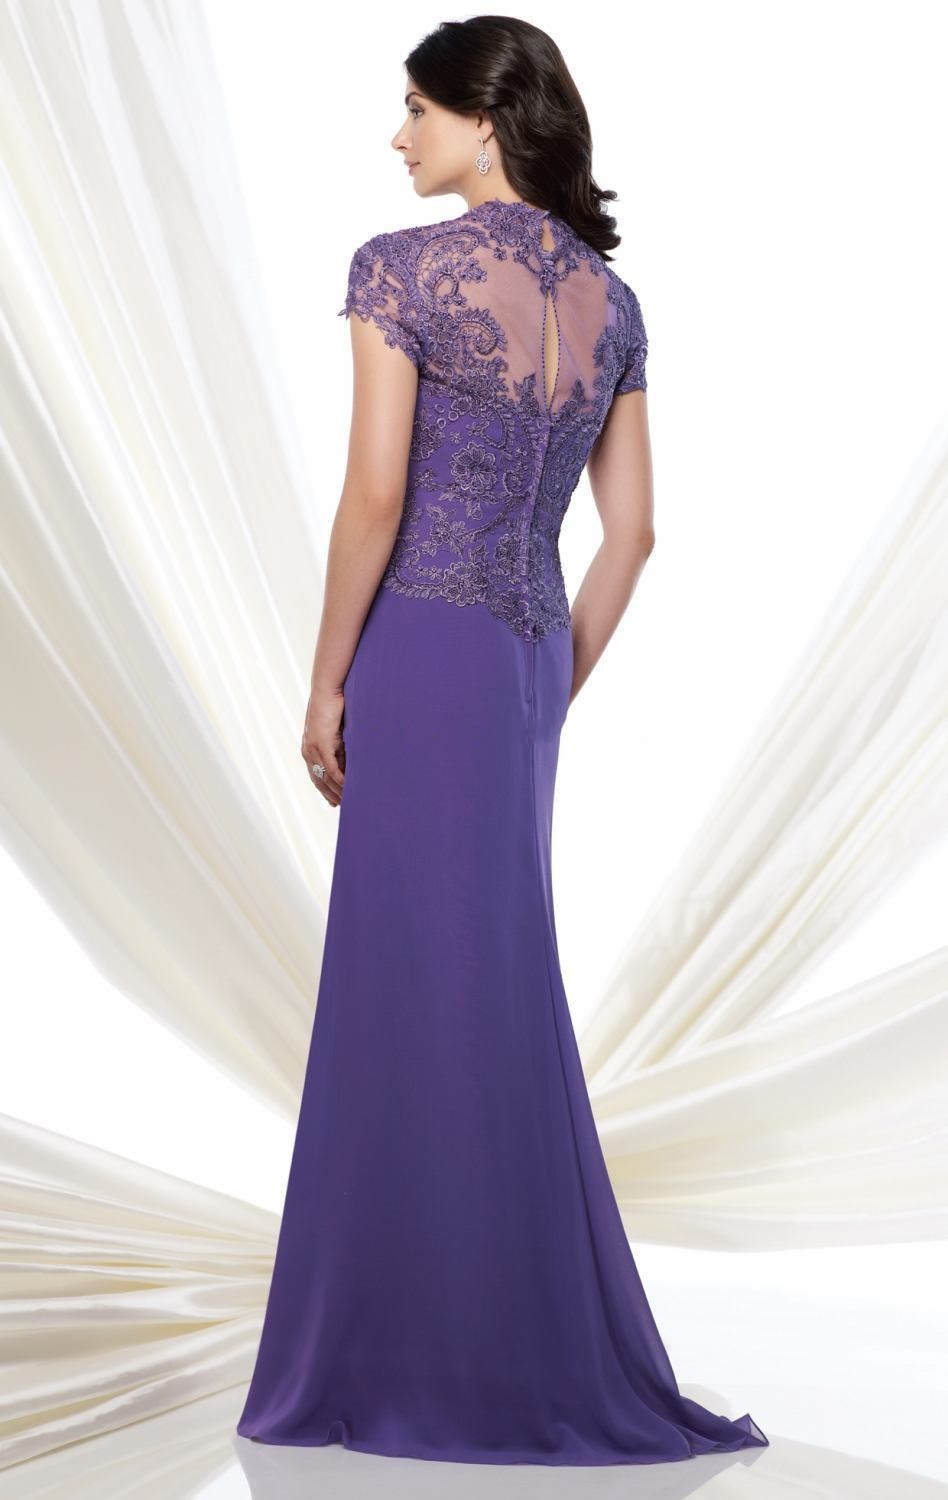 Euro Type Sweetheart Purple Mother of Bride Dresses Chiffon Short Sleeves Lace Beaded Online Party Dresses